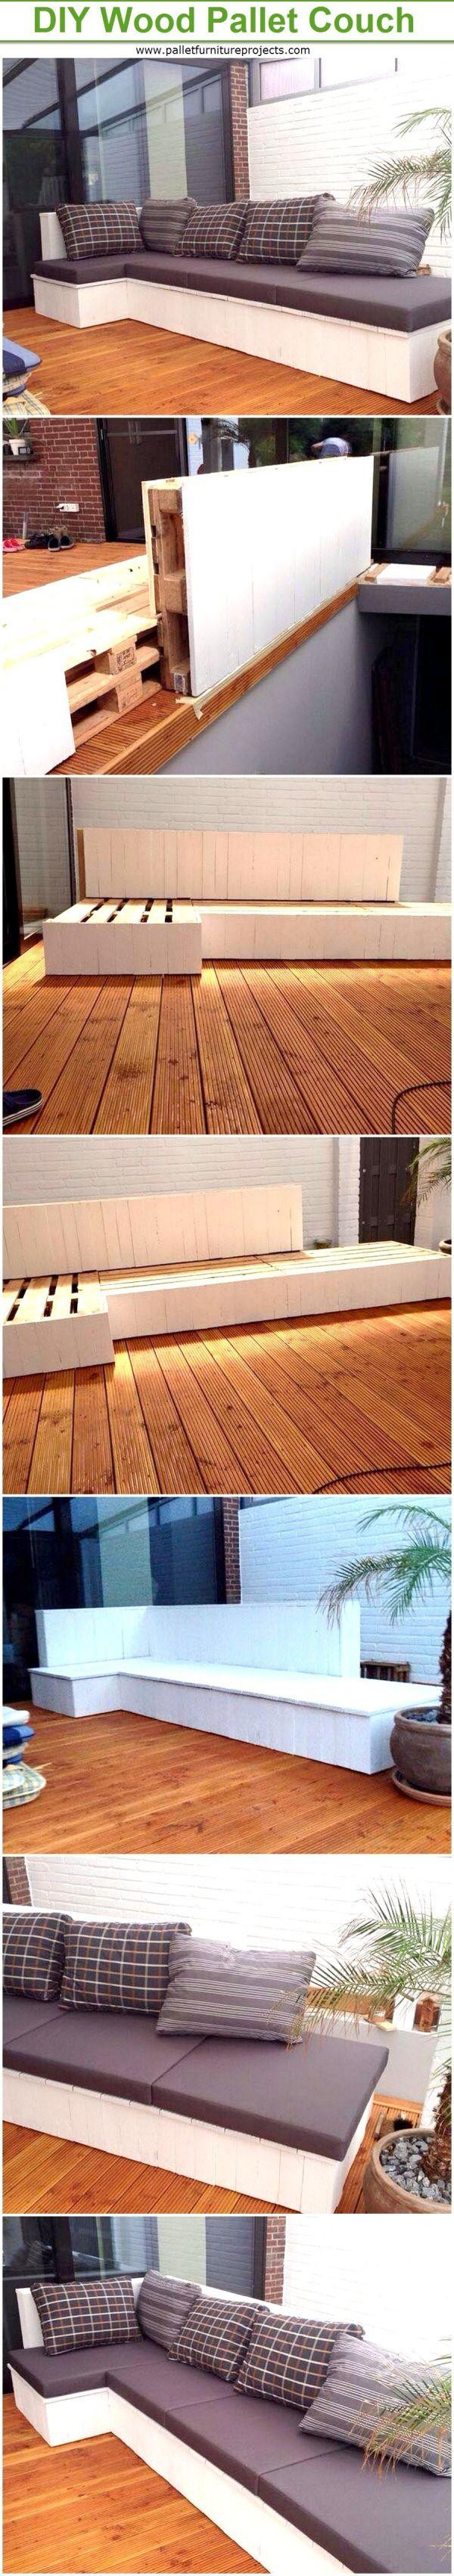 best diy hardwood flooring of diy wood pallet projects inspirational 547 best diy furniture from within diy wood pallet projects inspirational diy wood pallet cushioned couch